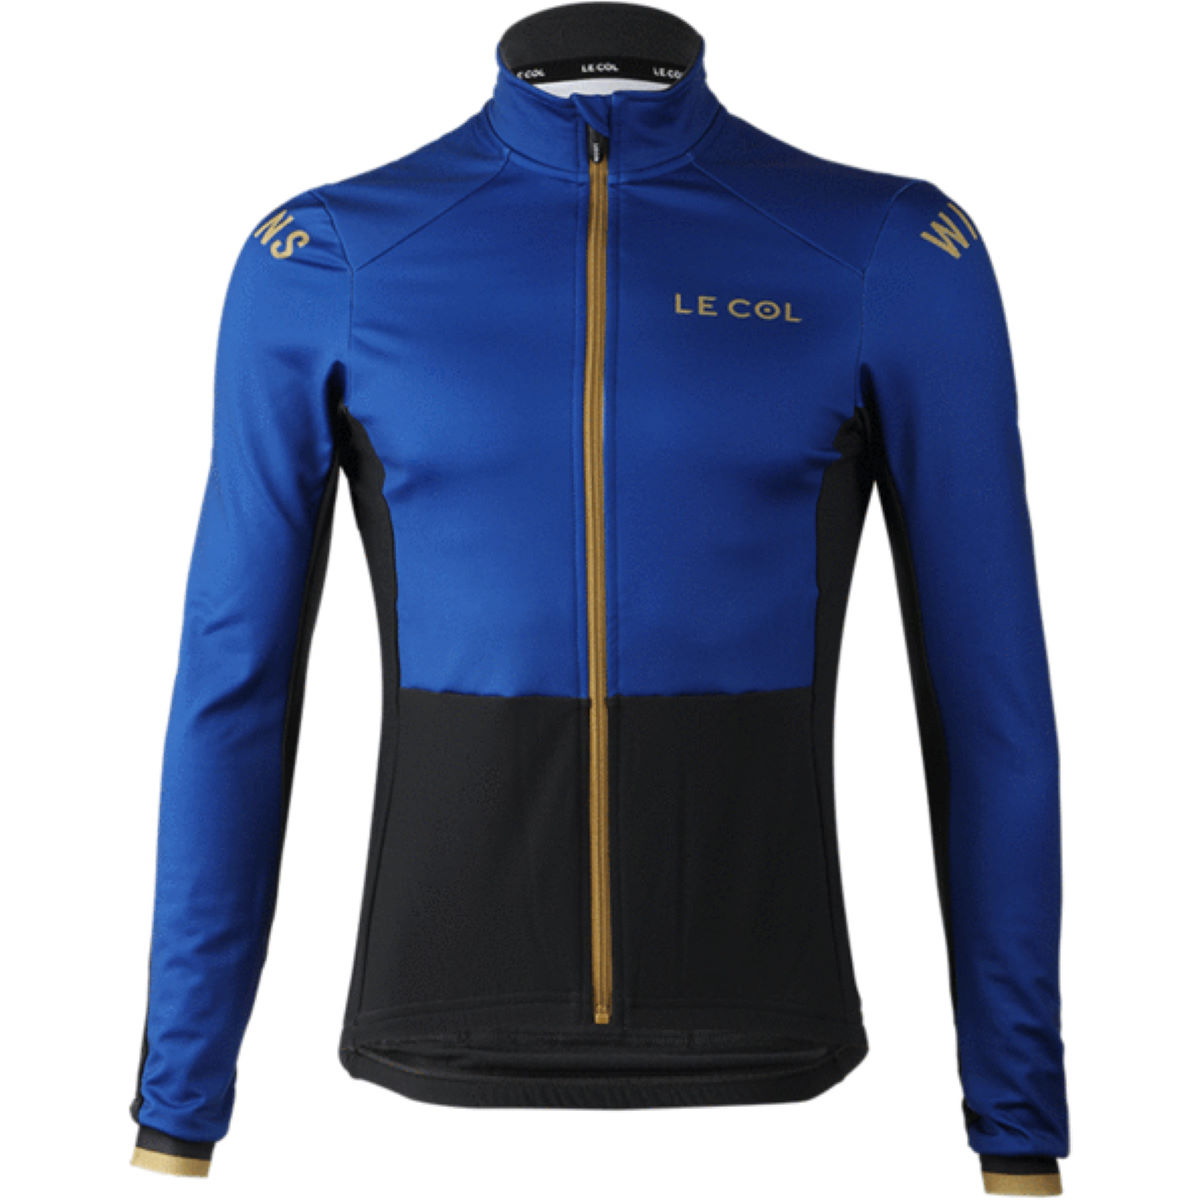 Le Col Le Col By Wiggins Sport Jacket   Jackets